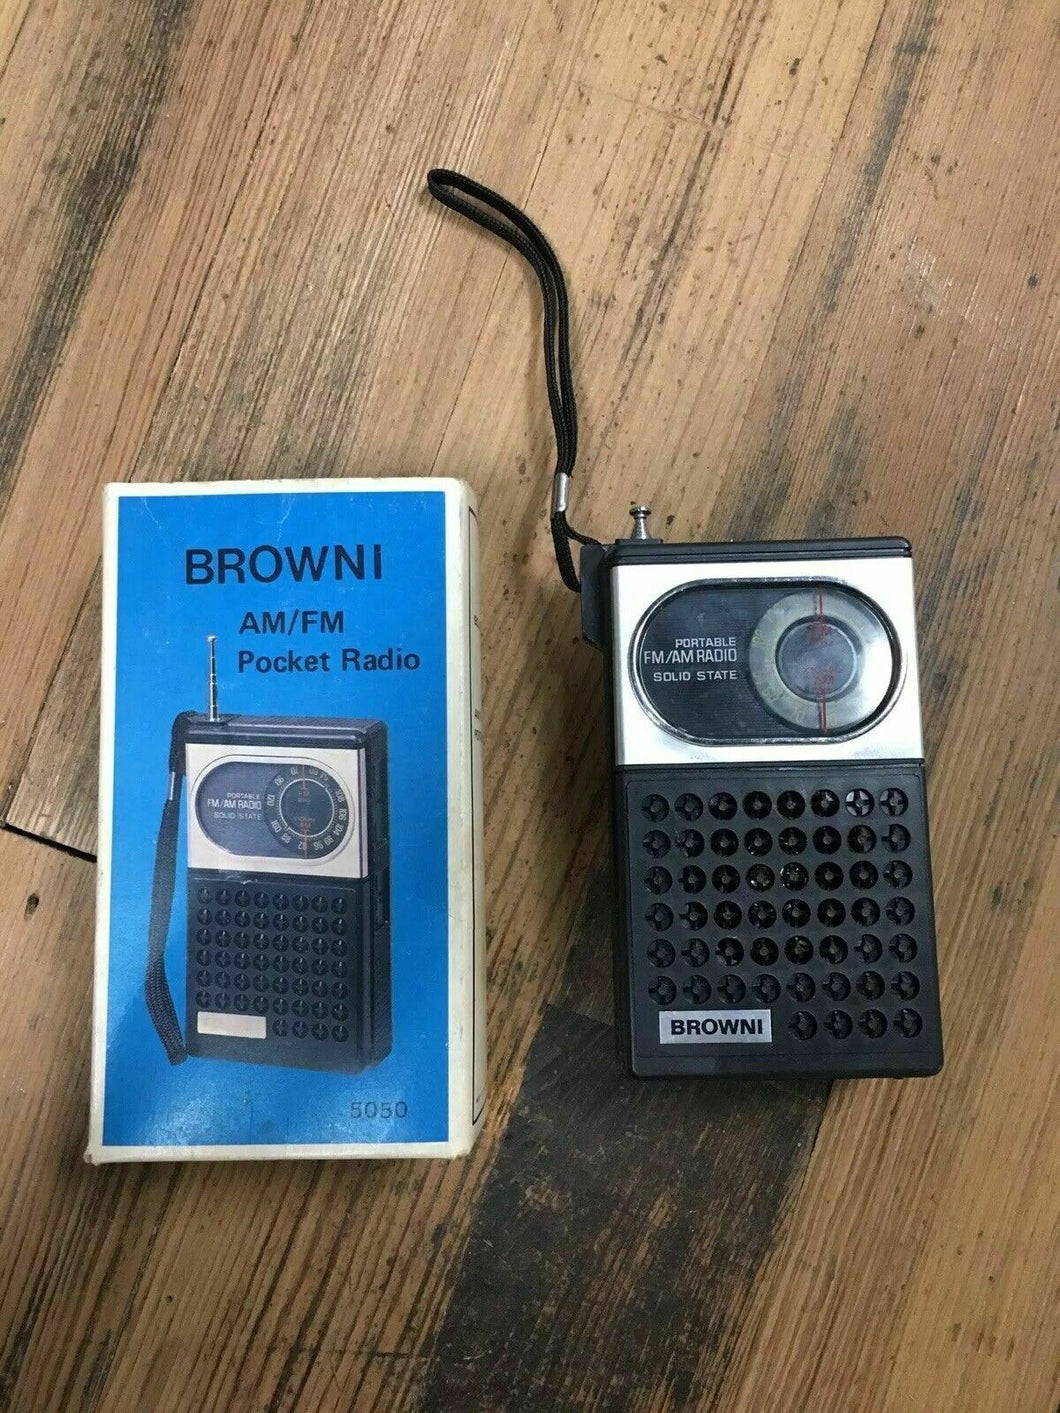 Brownie AM/FM Pocket Radio 5050 - Lot 4194